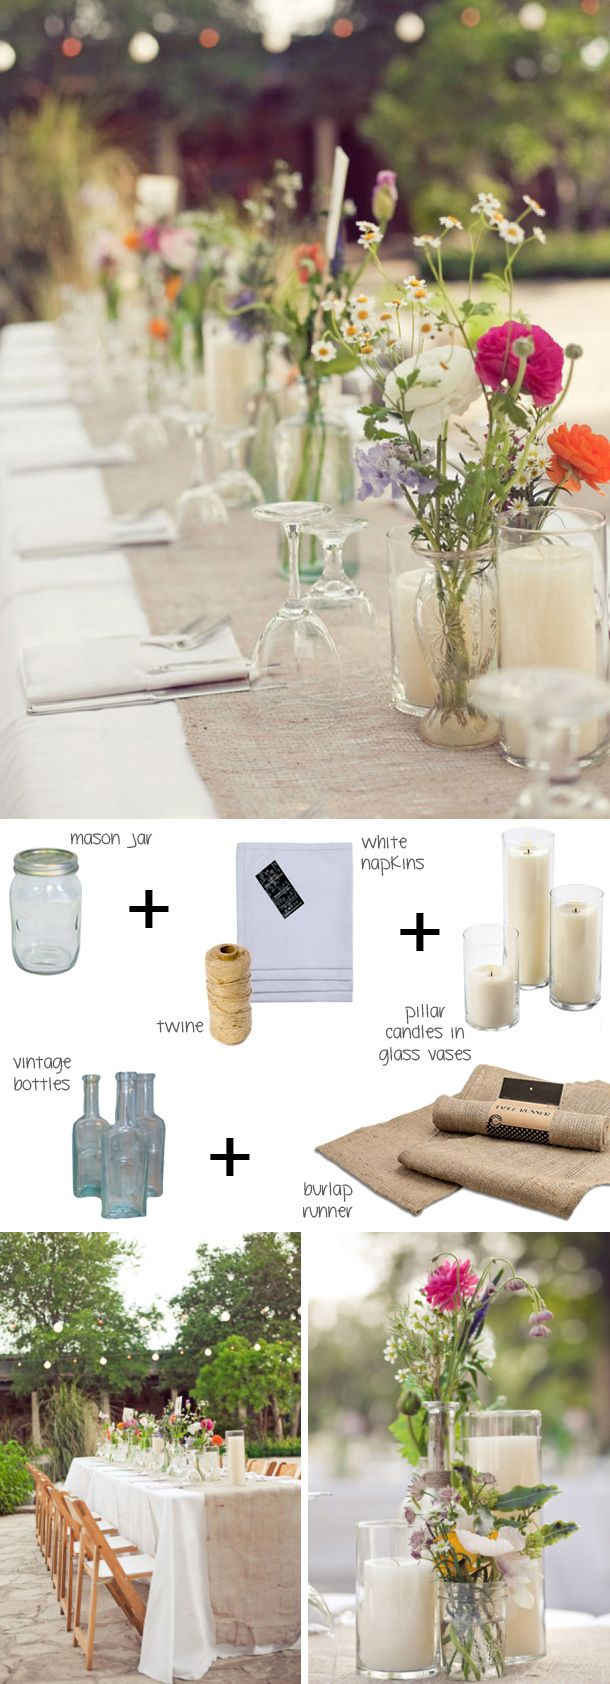 How to style a boho tablescape (budget boho) | SouthBound Bride | http://www.southboundbride.com/ten-tables-boho-part-2 | Credit: The Nichols/La Fleur Vintage via Style Me Pretty